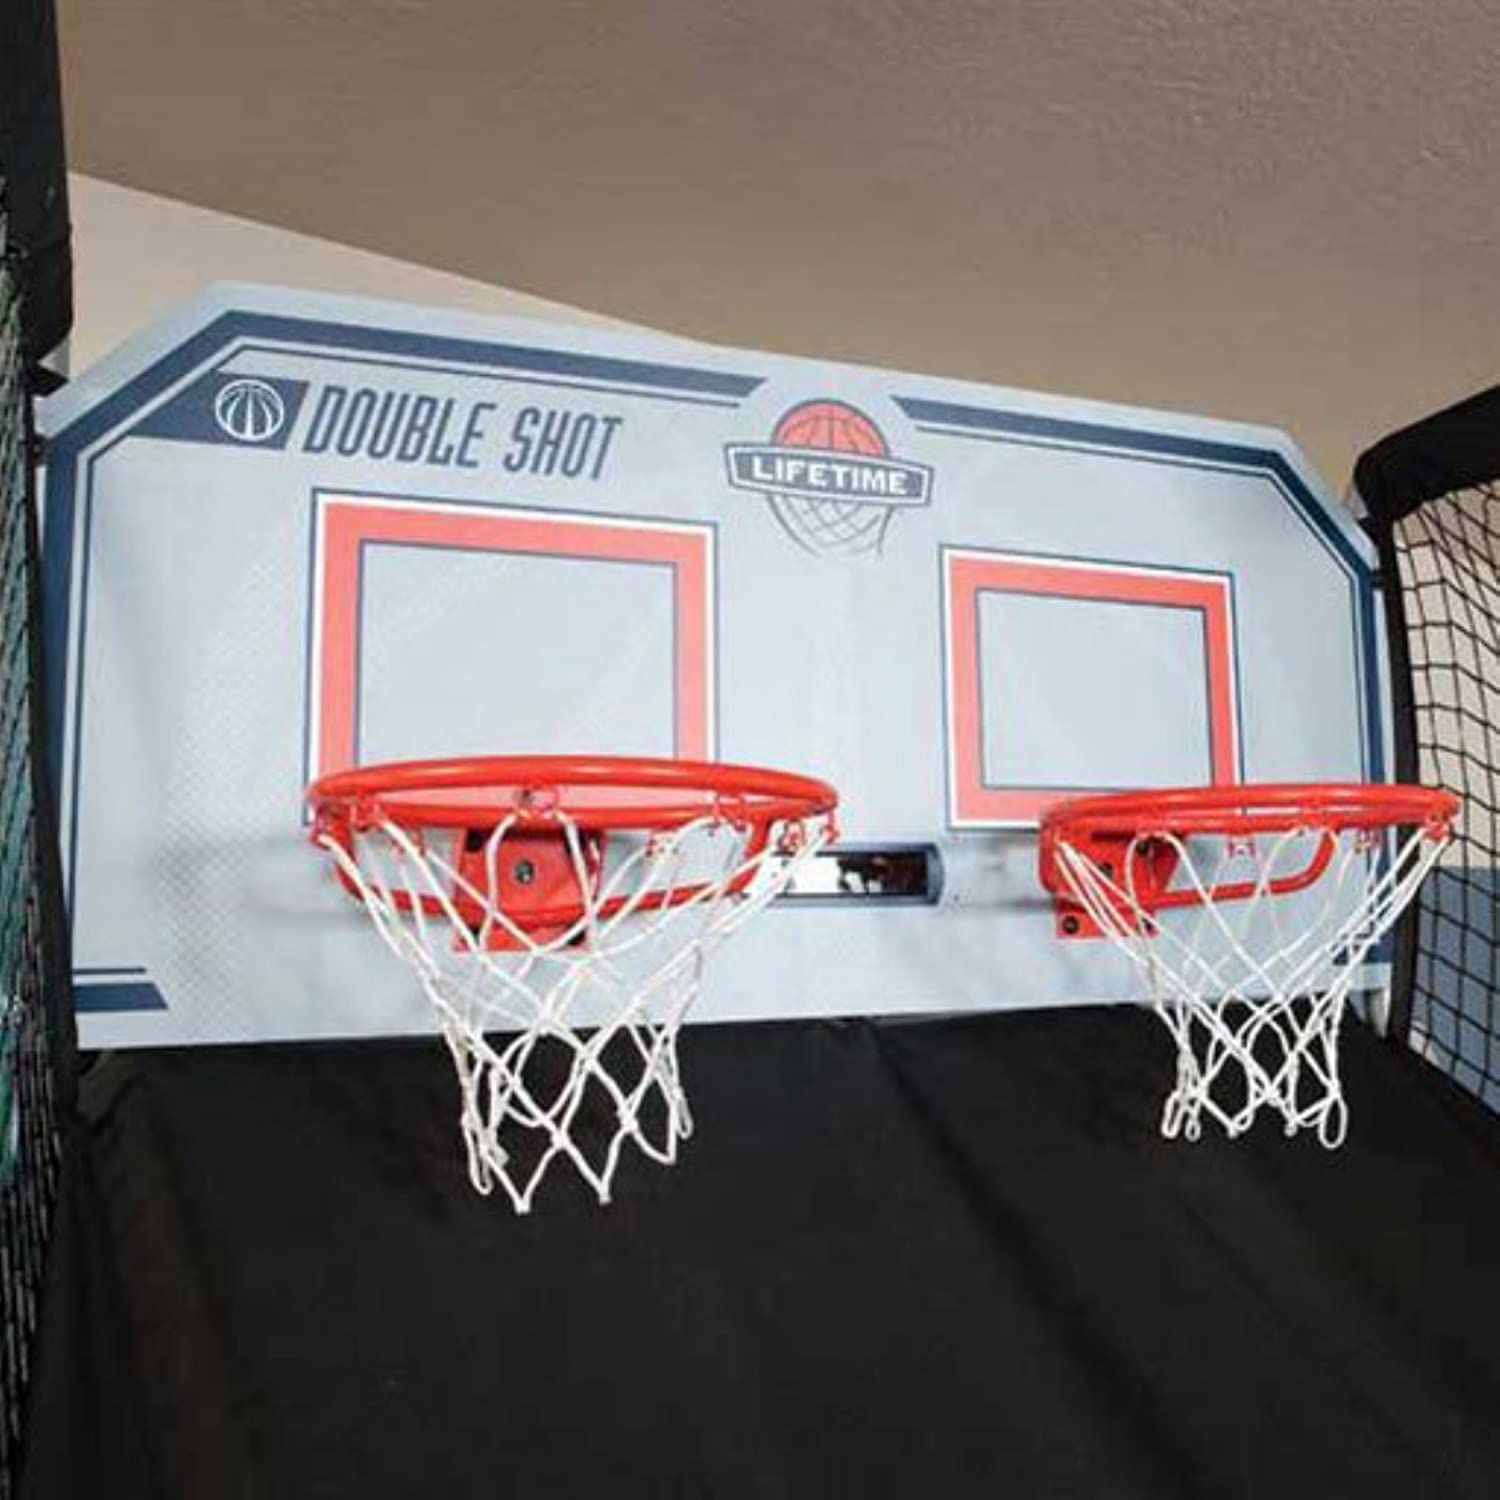 Lifetime Basketball Double Shot Arcade System Sports Diagram Pictures 2 How To Draw A Hoop Step 4 Outdoors